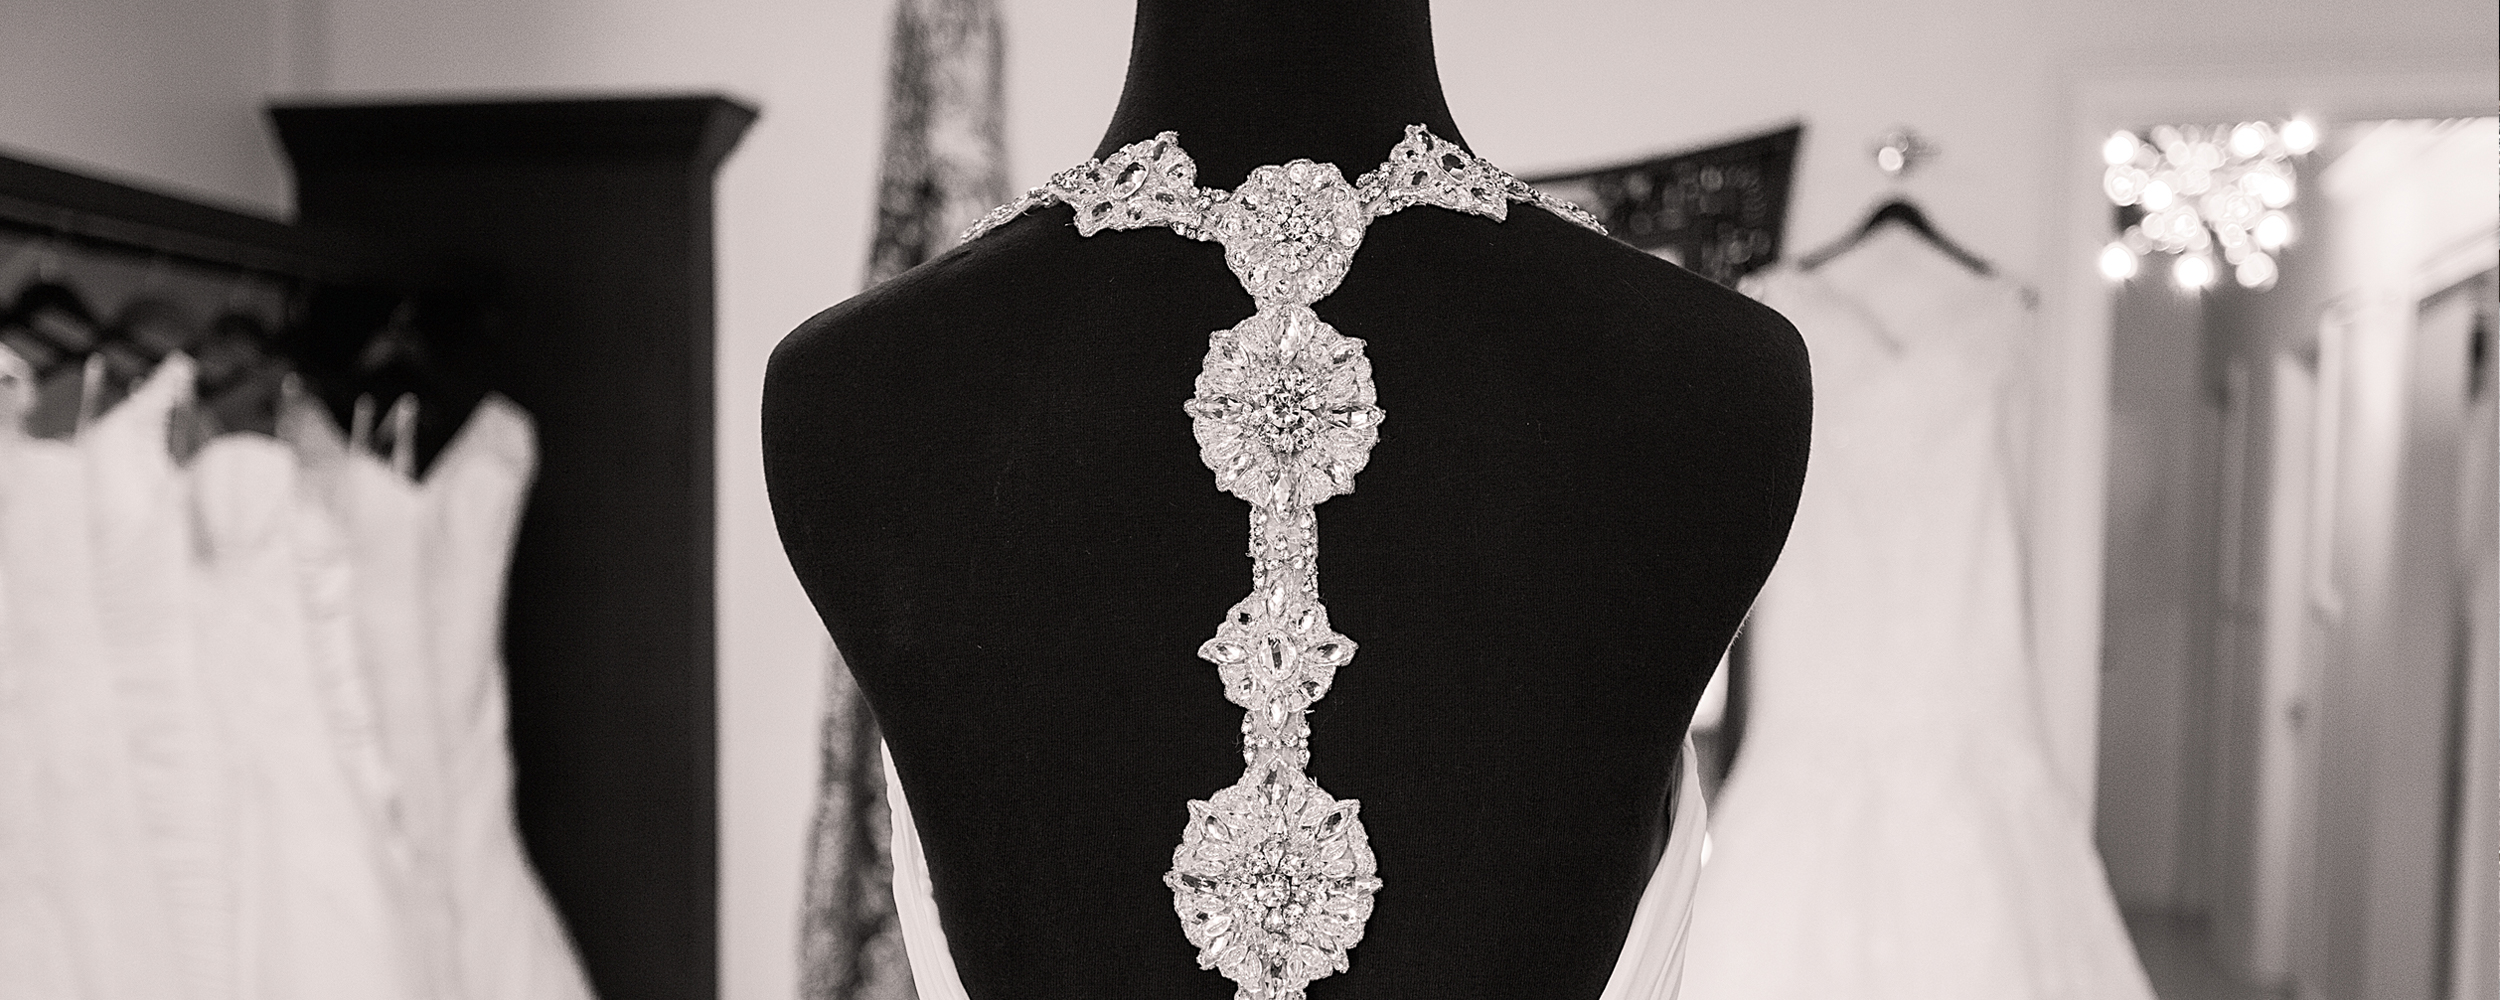 dress-detail-closeup.jpg